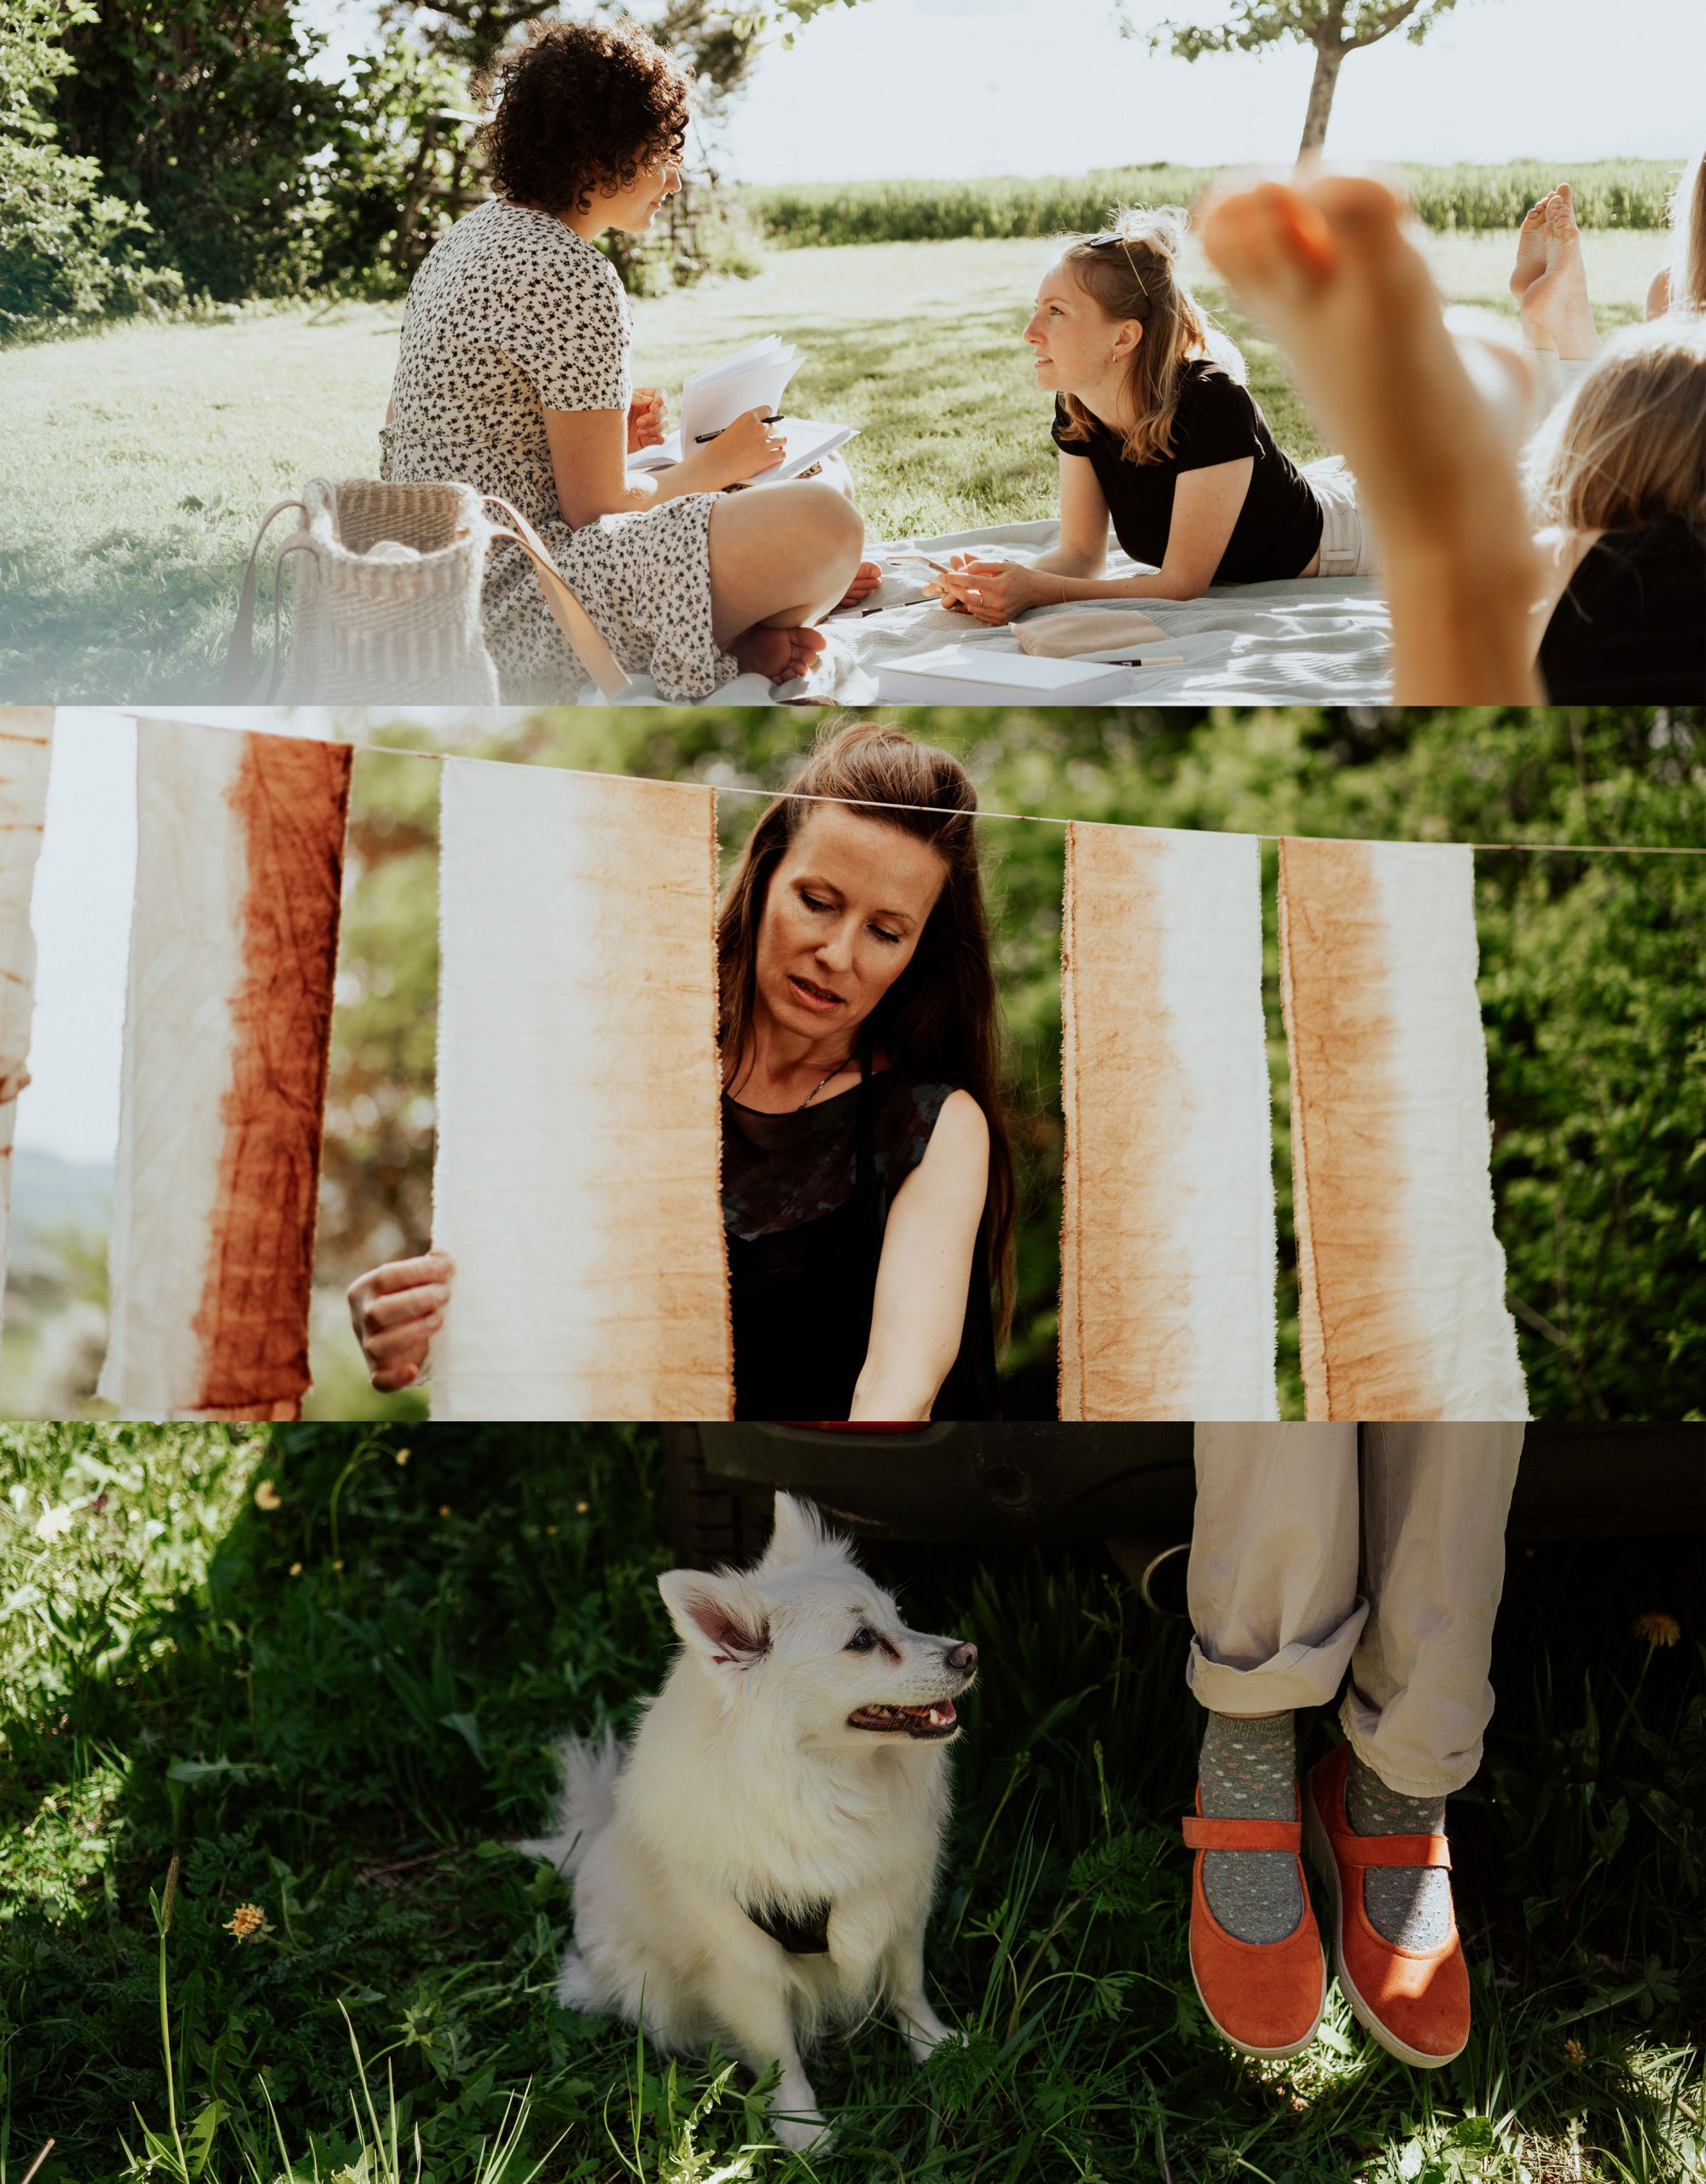 a day in your life with friends and dog